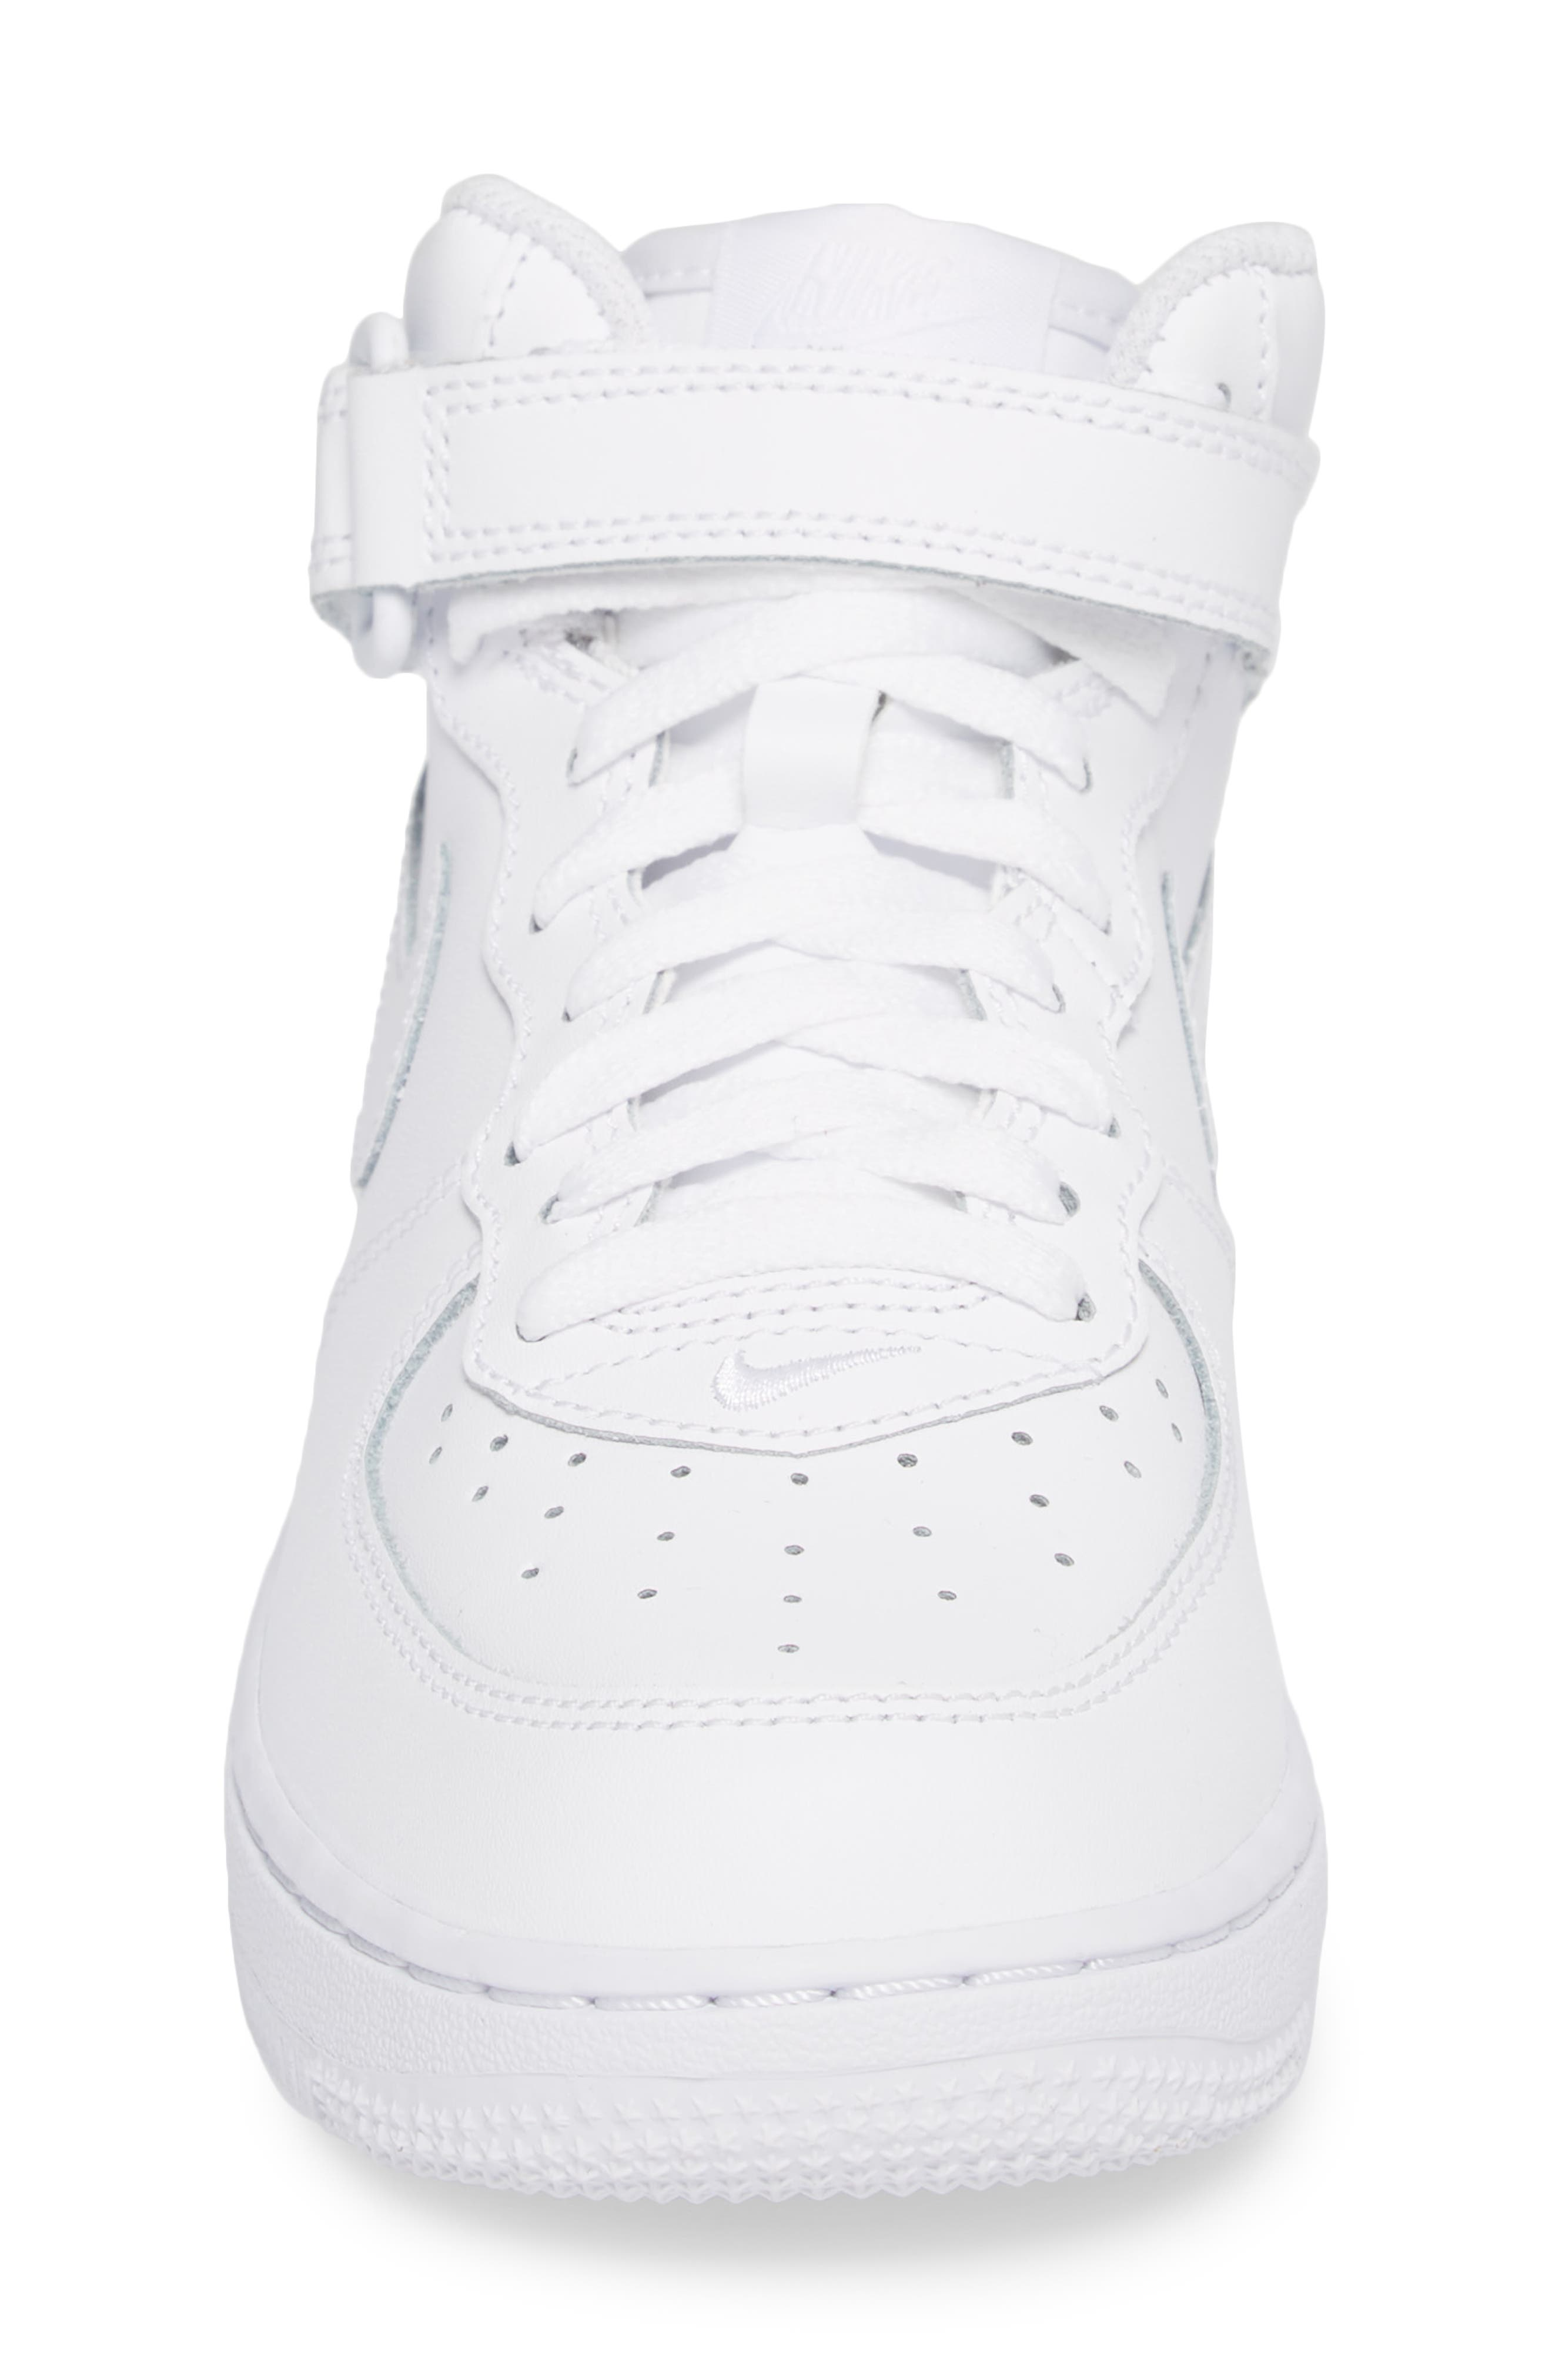 NIKE,                             Air Force 1 Mid Sneaker,                             Alternate thumbnail 4, color,                             WHITE/ WHITE